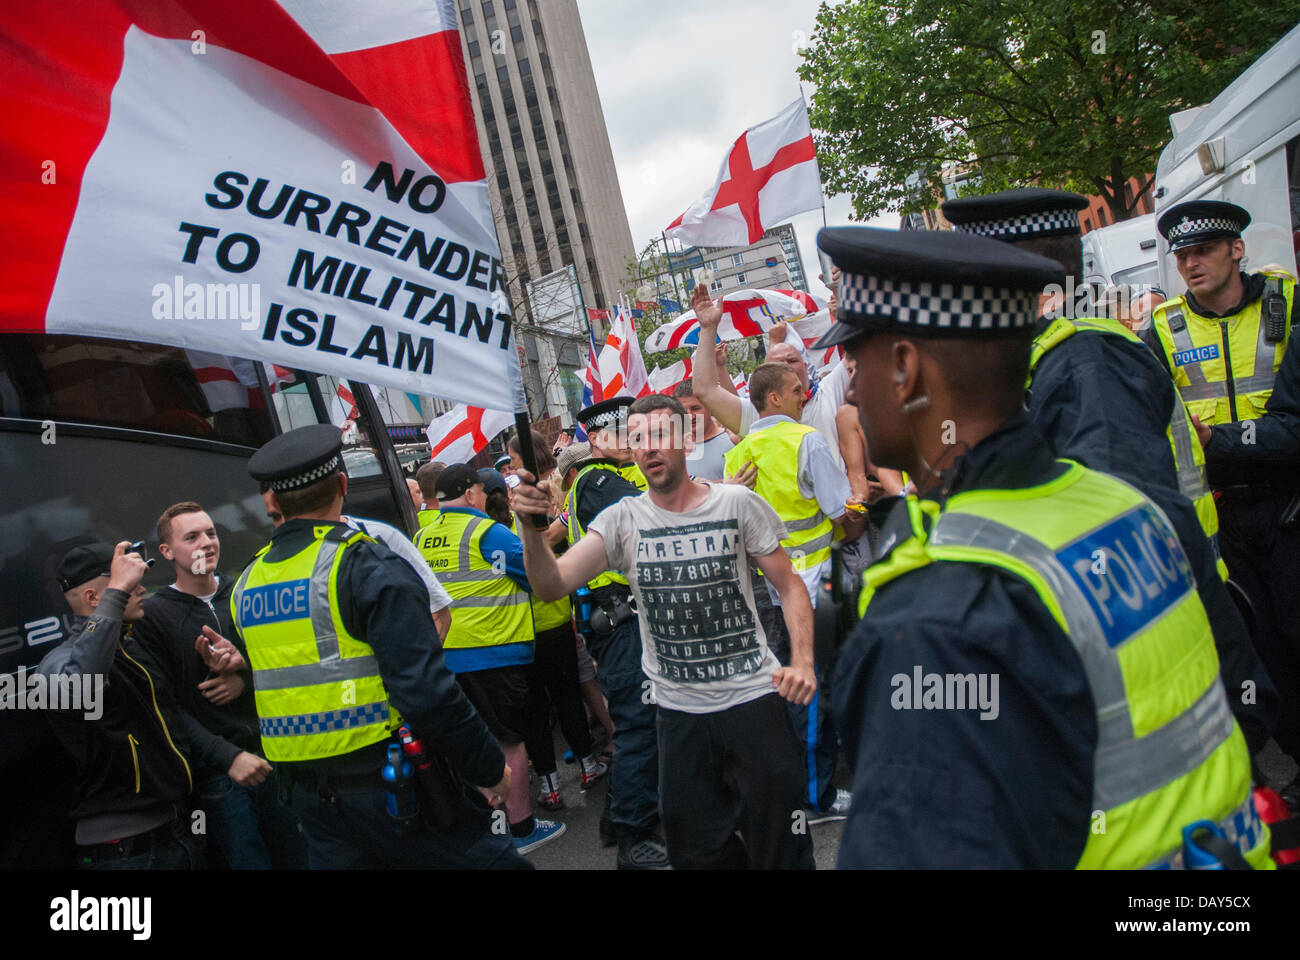 Birmingham, UK. 20th July, 2013. English Defence League supporters were to be escorted by police to Centenary Square - Stock Image